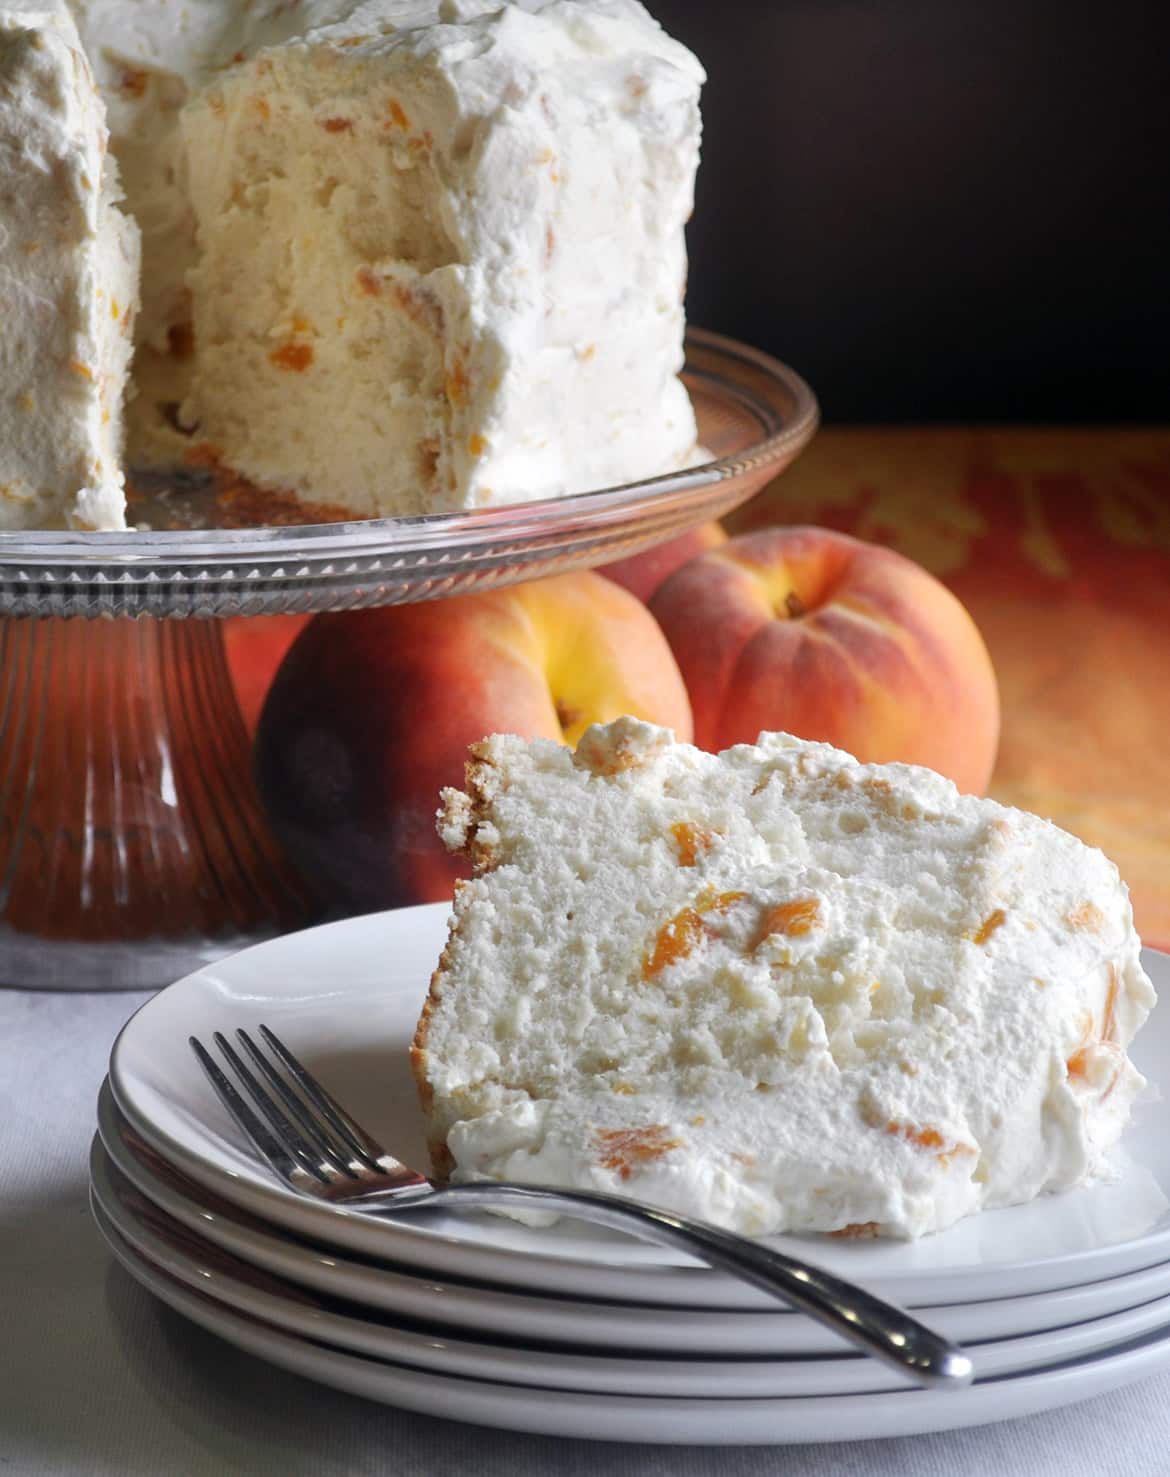 Angel Food Cake Recipe With Peaches And Cream Of Batter